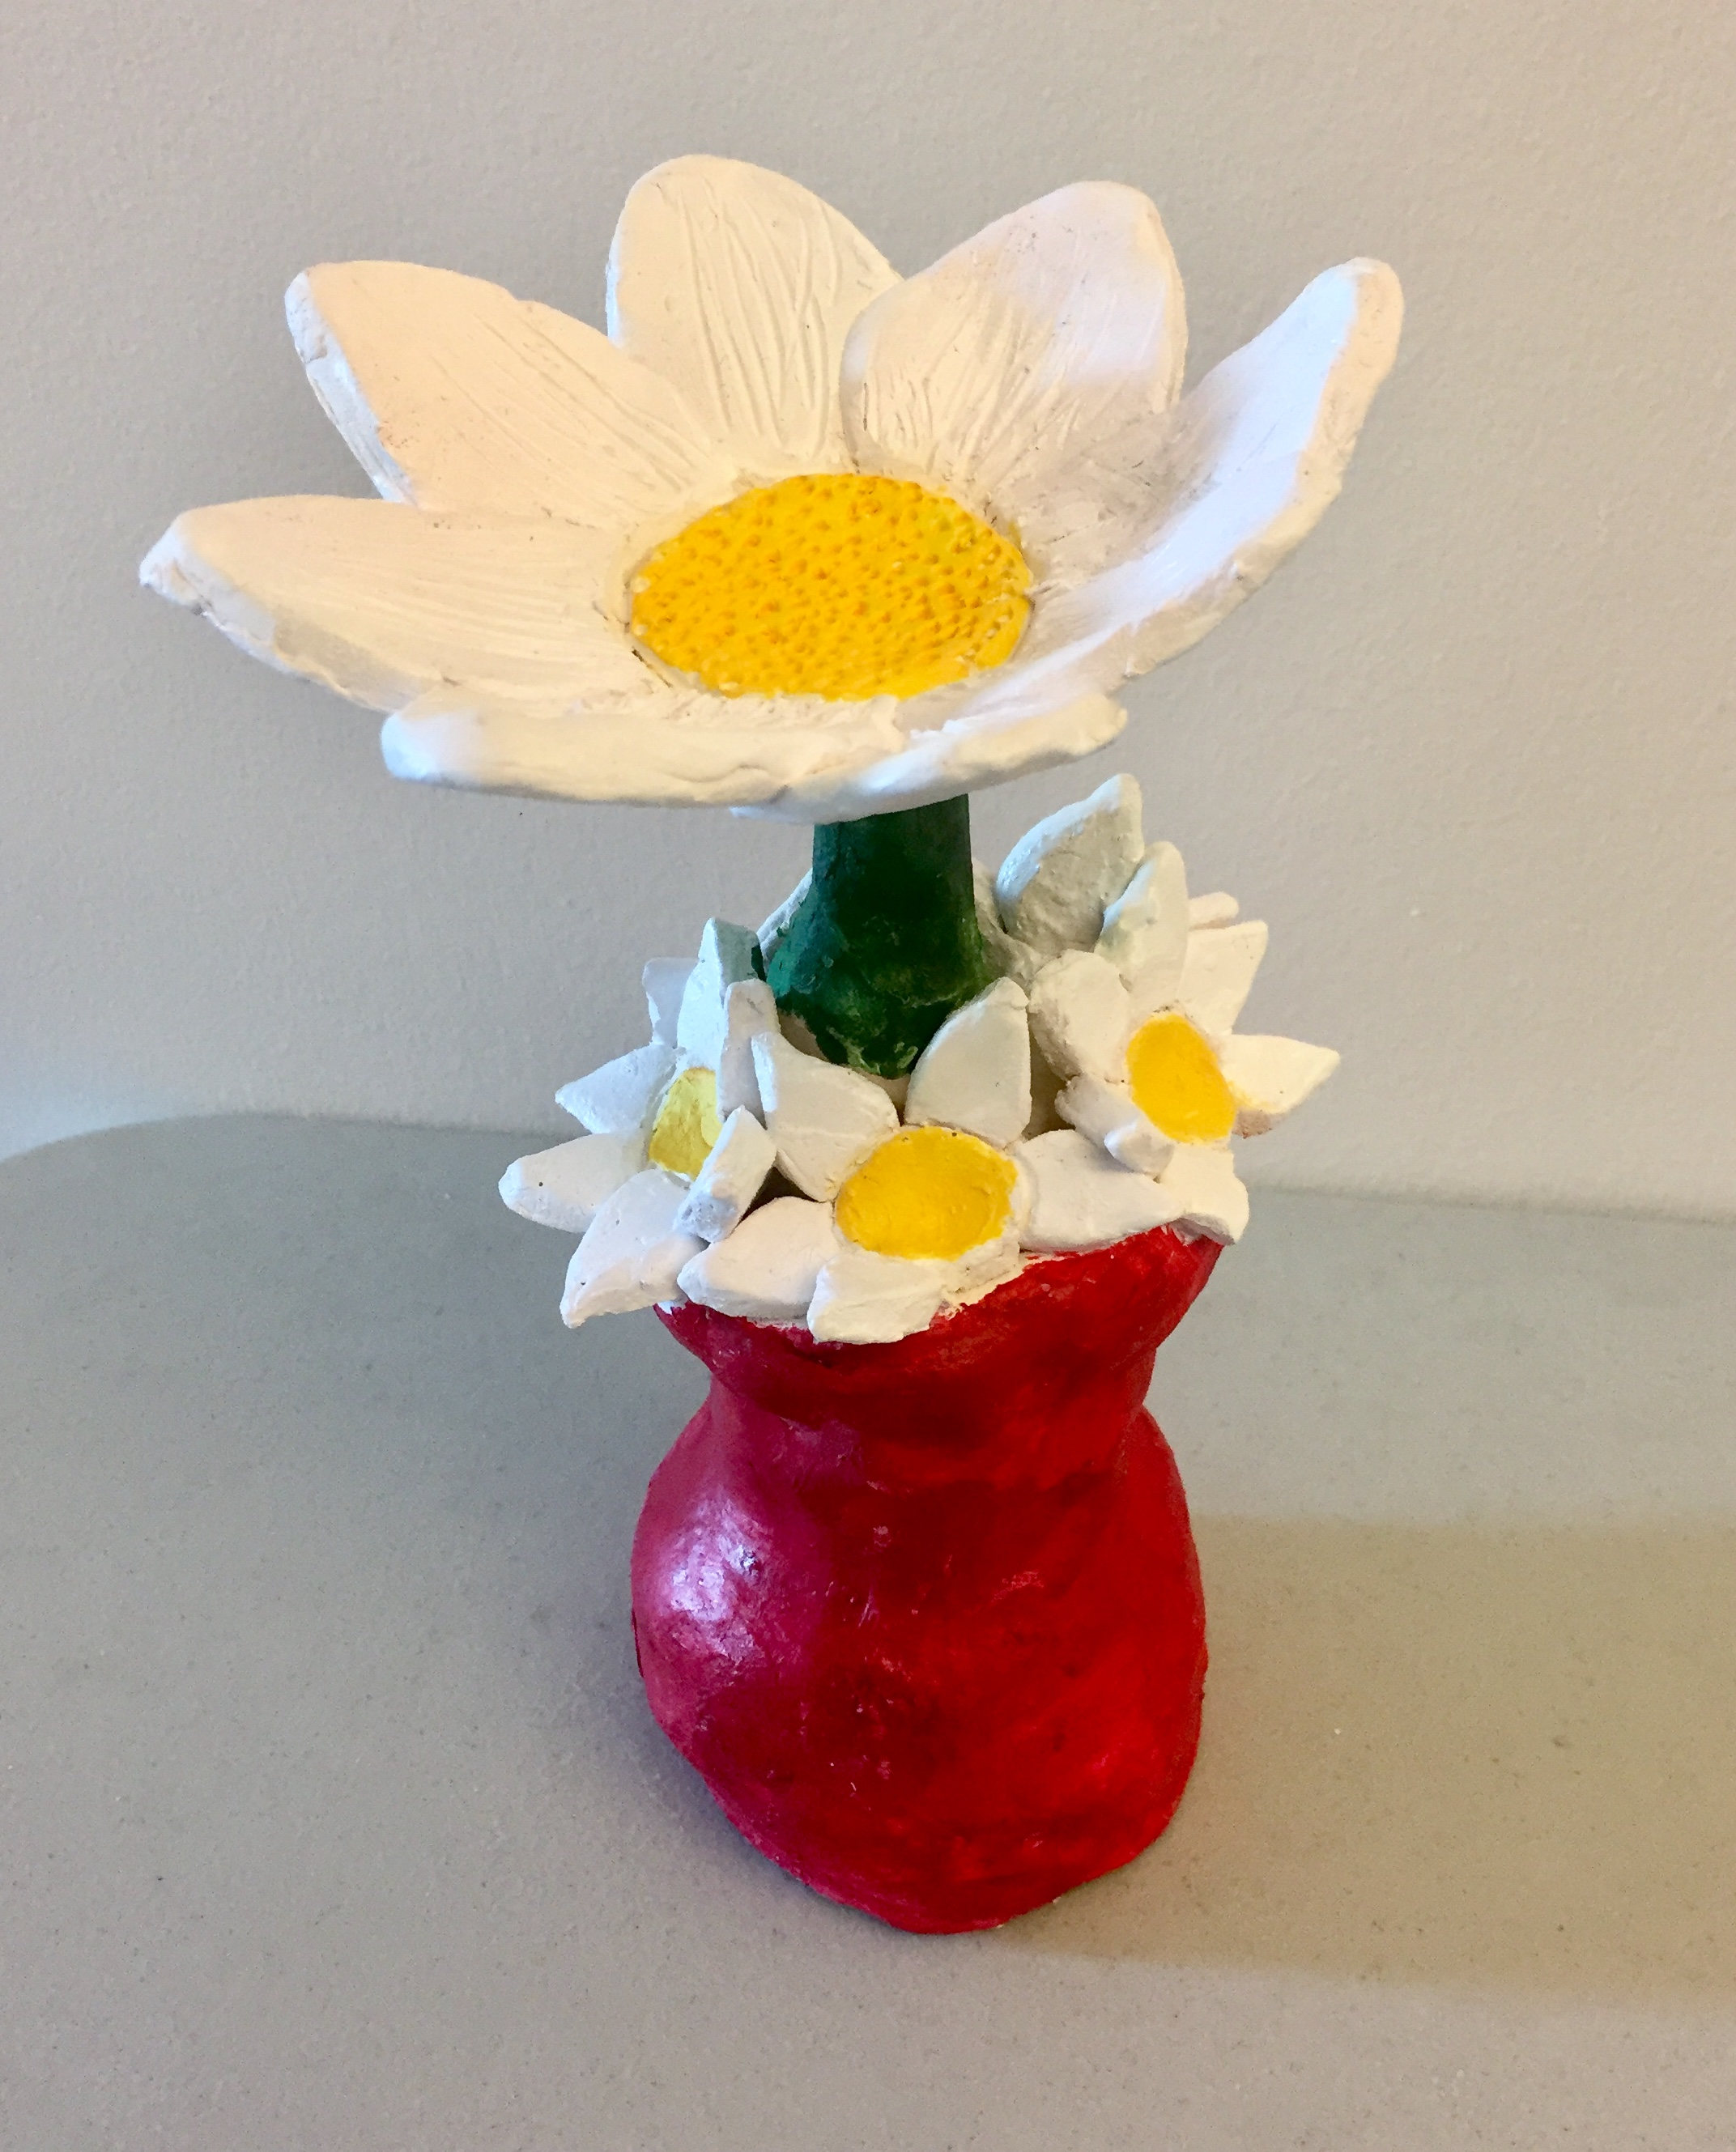 Photo Description: Sculpture of a large white daisy with a with a green stem in a red vase with four smaller daises resting on the lips of the vase.